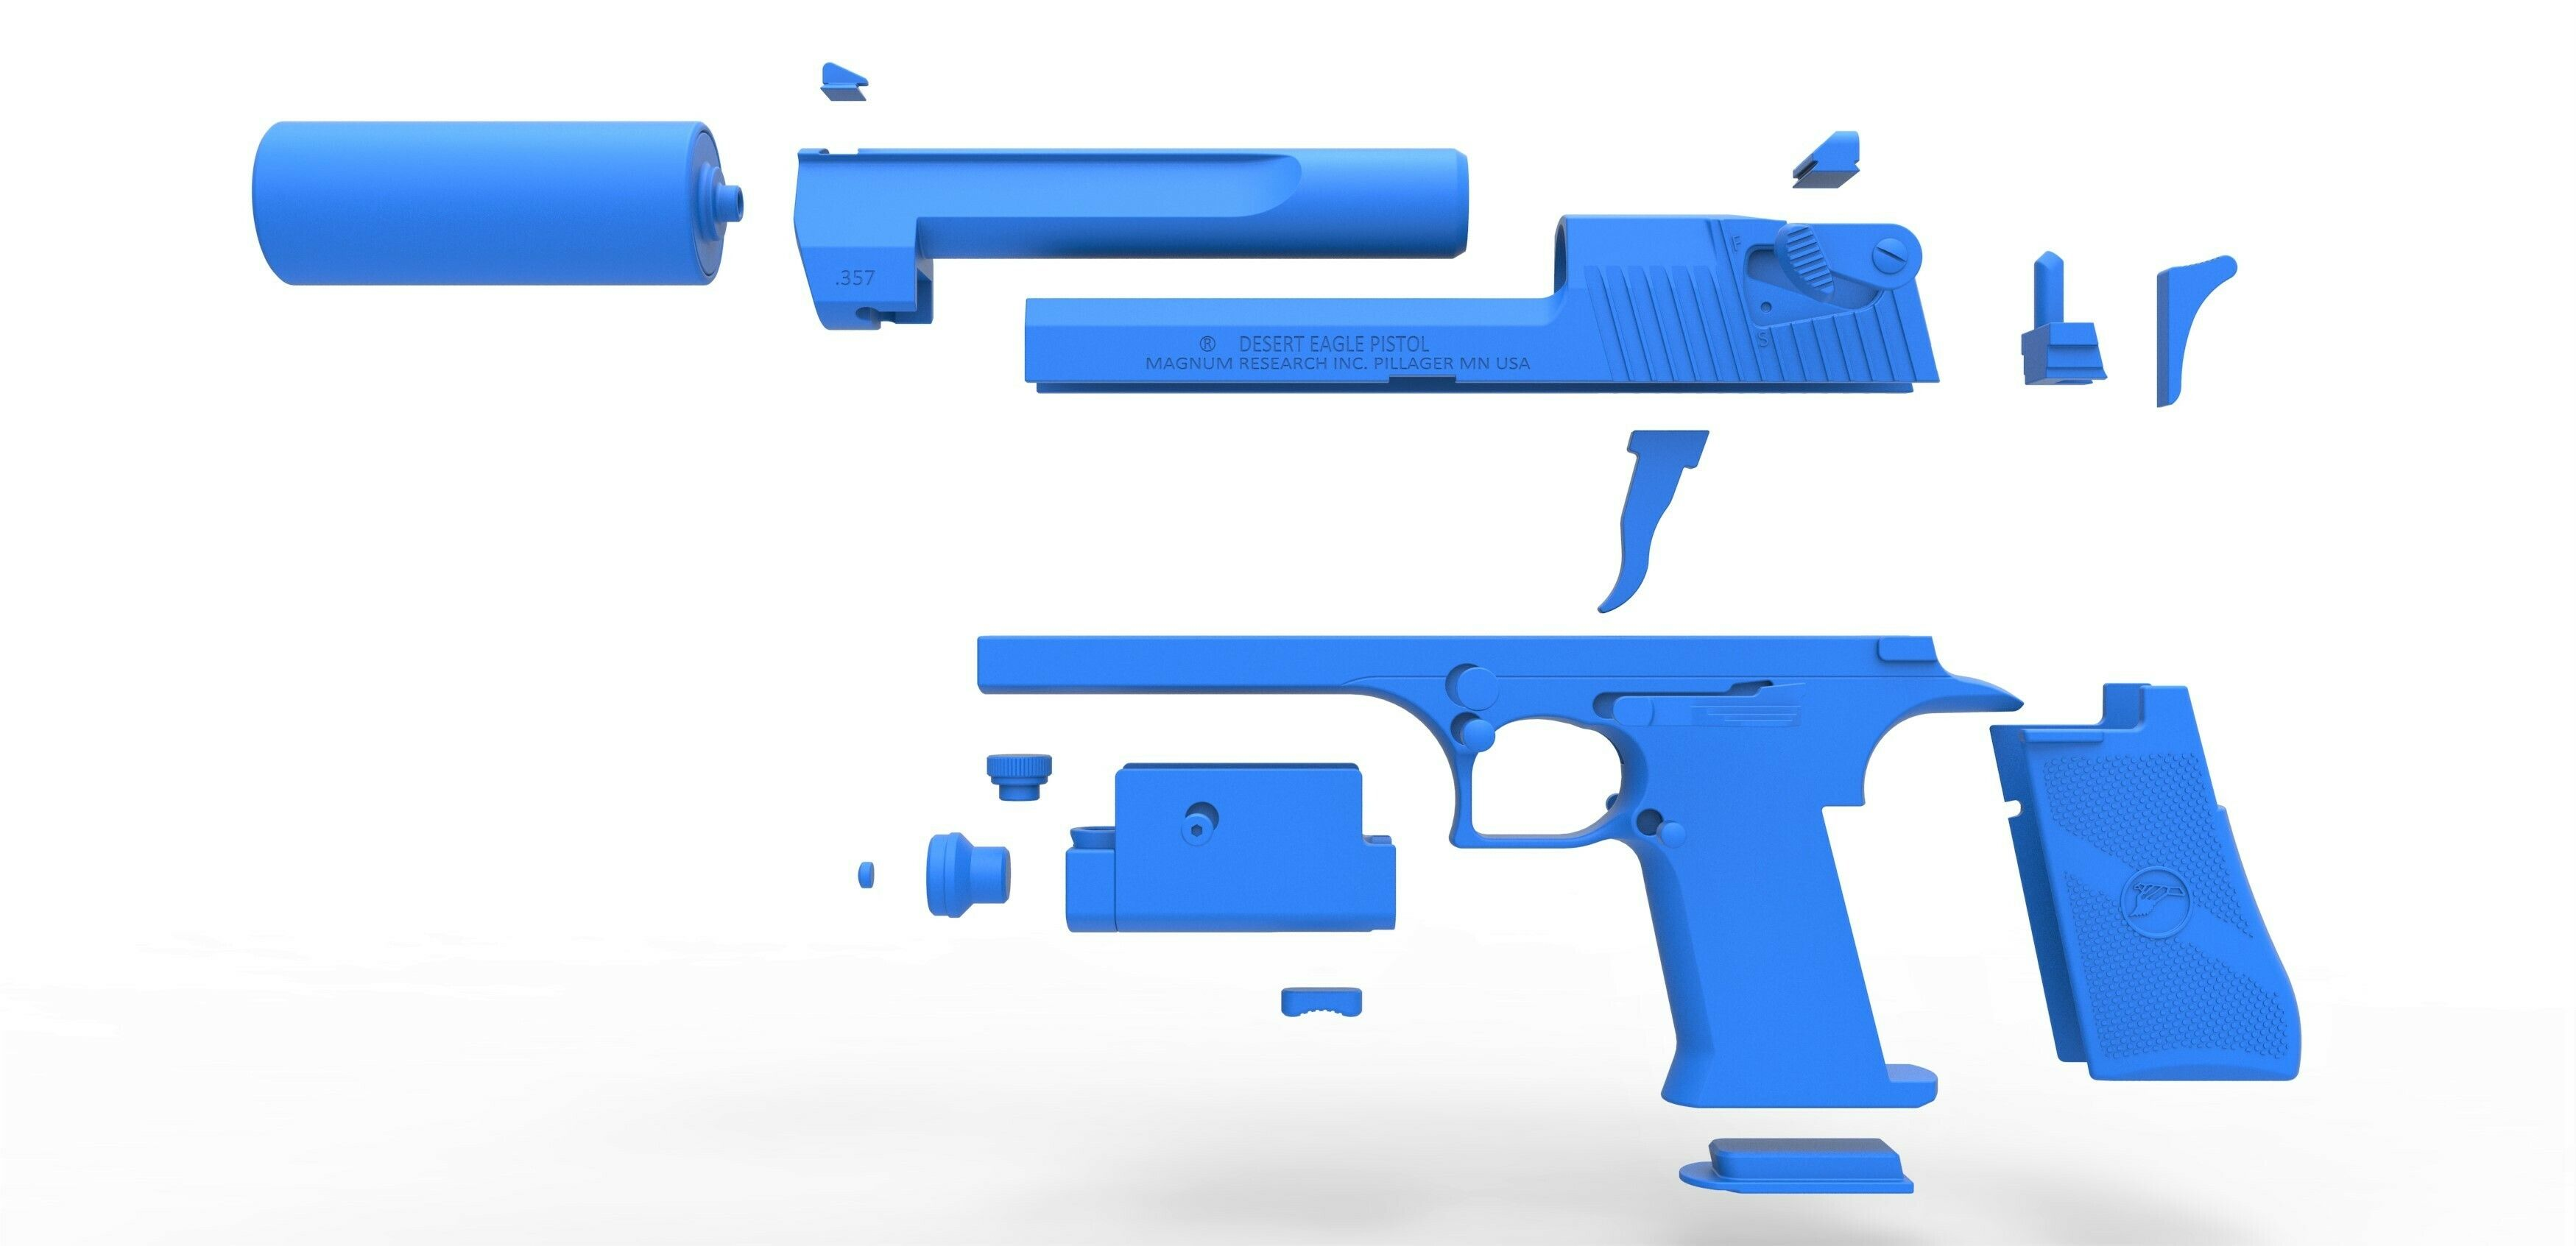 65.jpg Download STL file Desert Eagle pistol from the movie Universal Soldier 1992 • 3D printable template, CosplayItemsRock